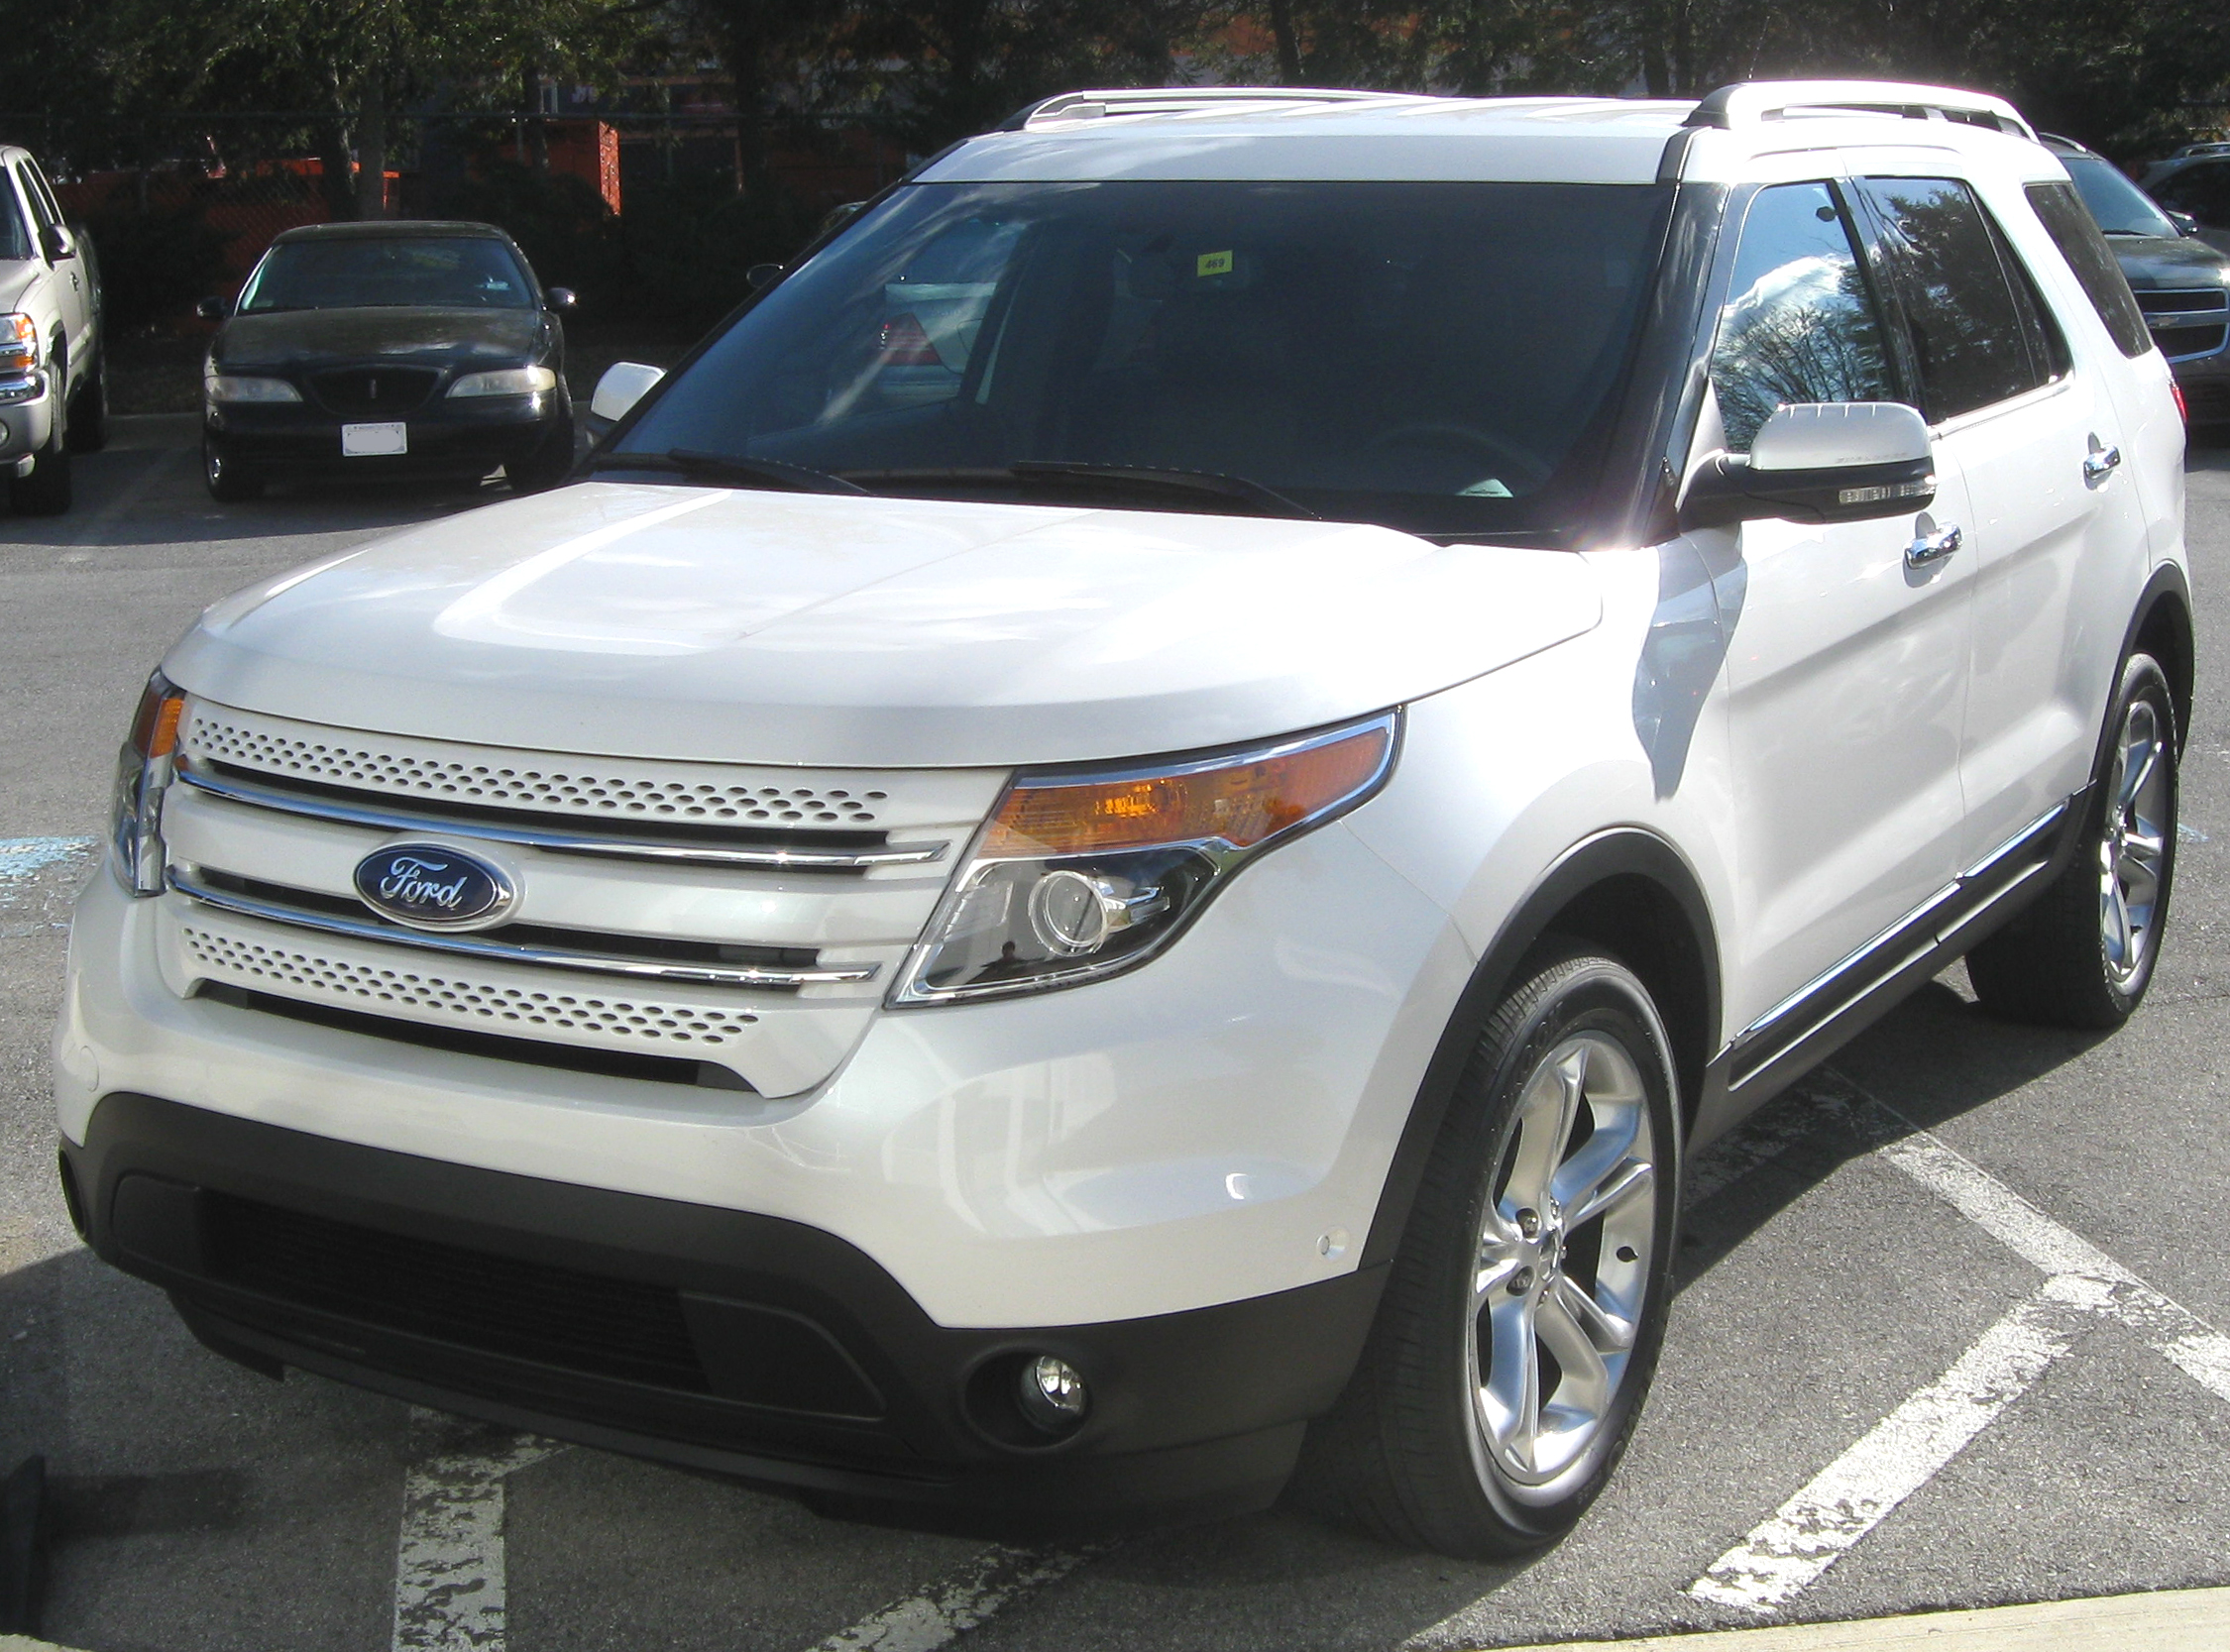 Ford Edge Limited >> 2010 FORD EXPLORER - Image #11